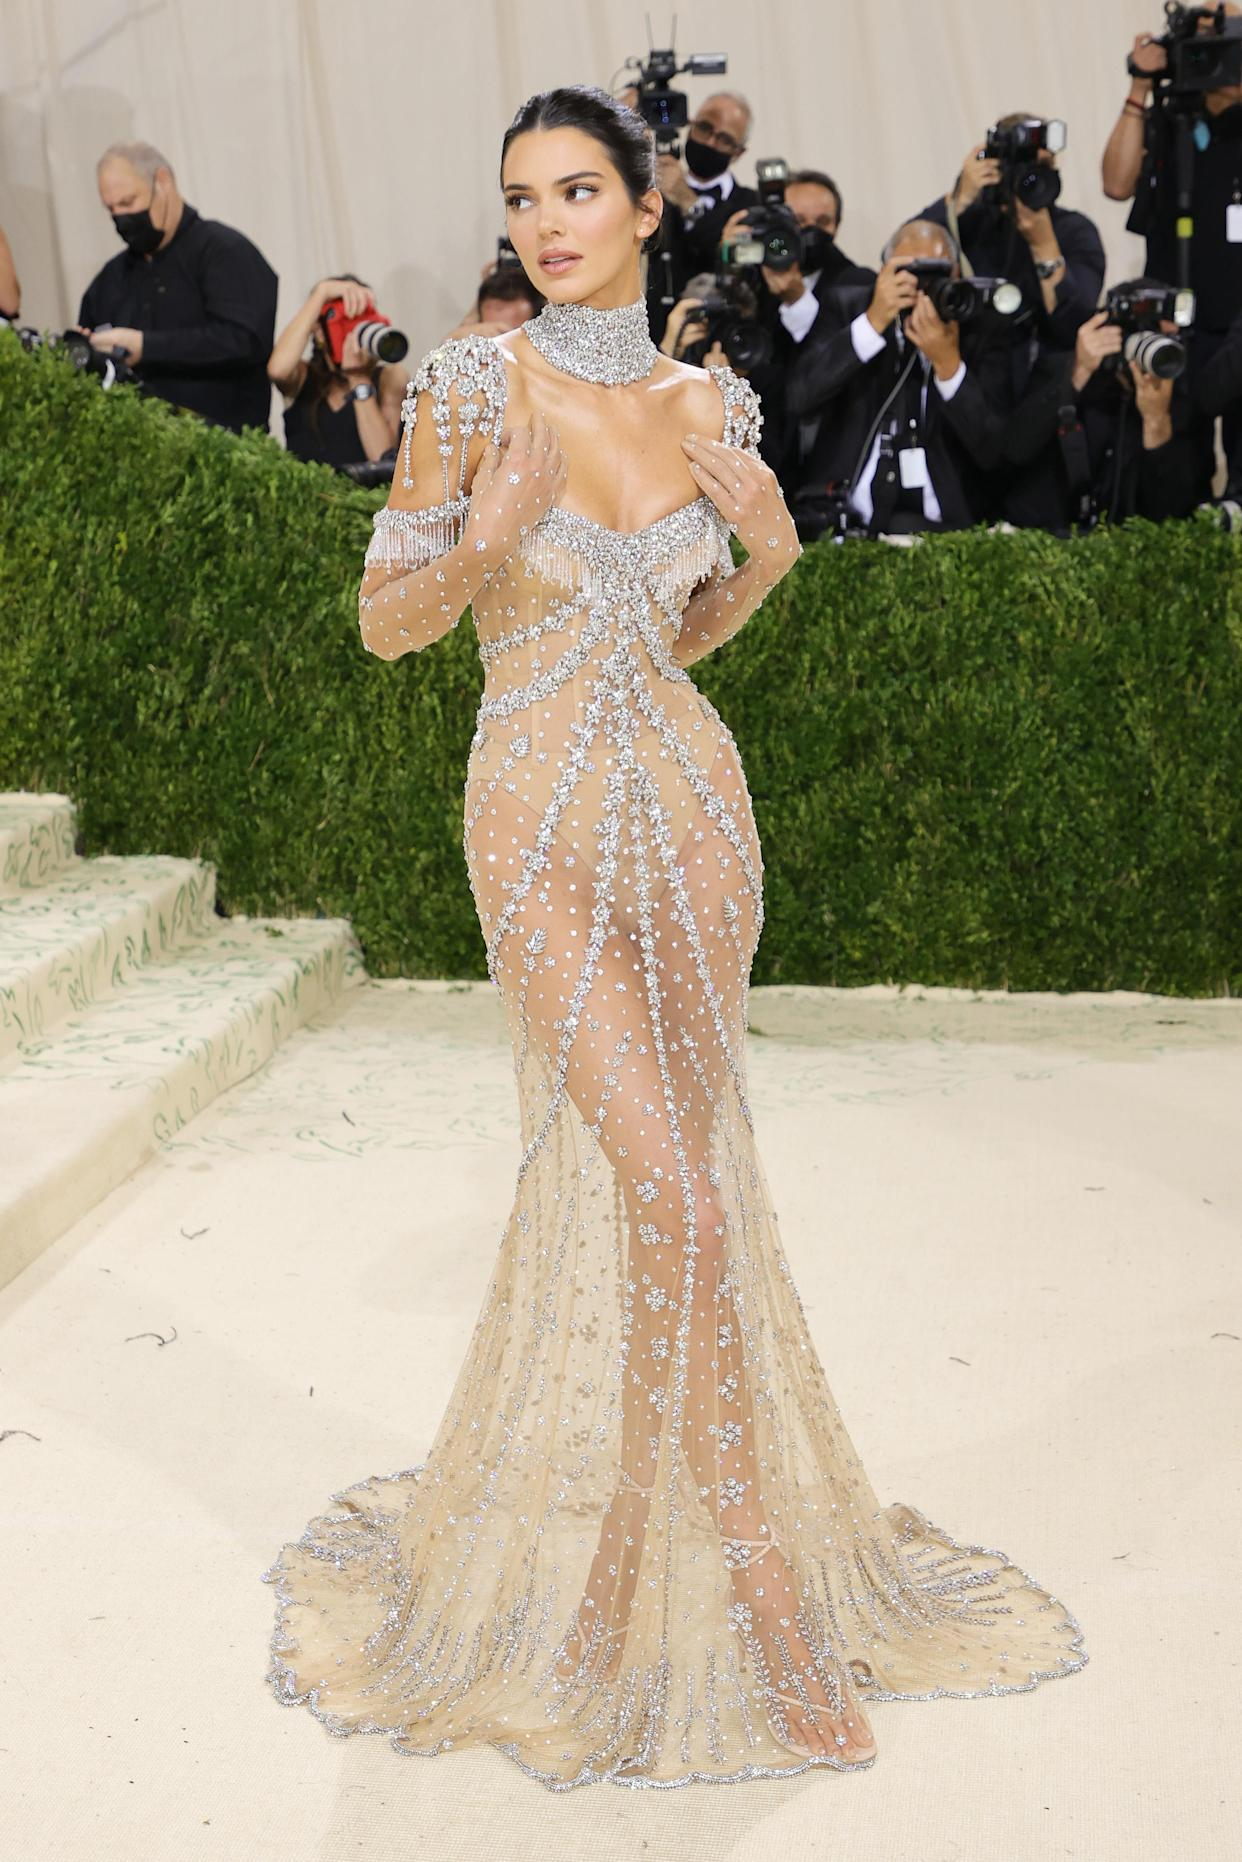 Kendall Jenner attends The 2021 Met Gala Celebrating In America: A Lexicon Of Fashion at Metropolitan Museum of Art on September 13, 2021 in New York City. (Getty Images)